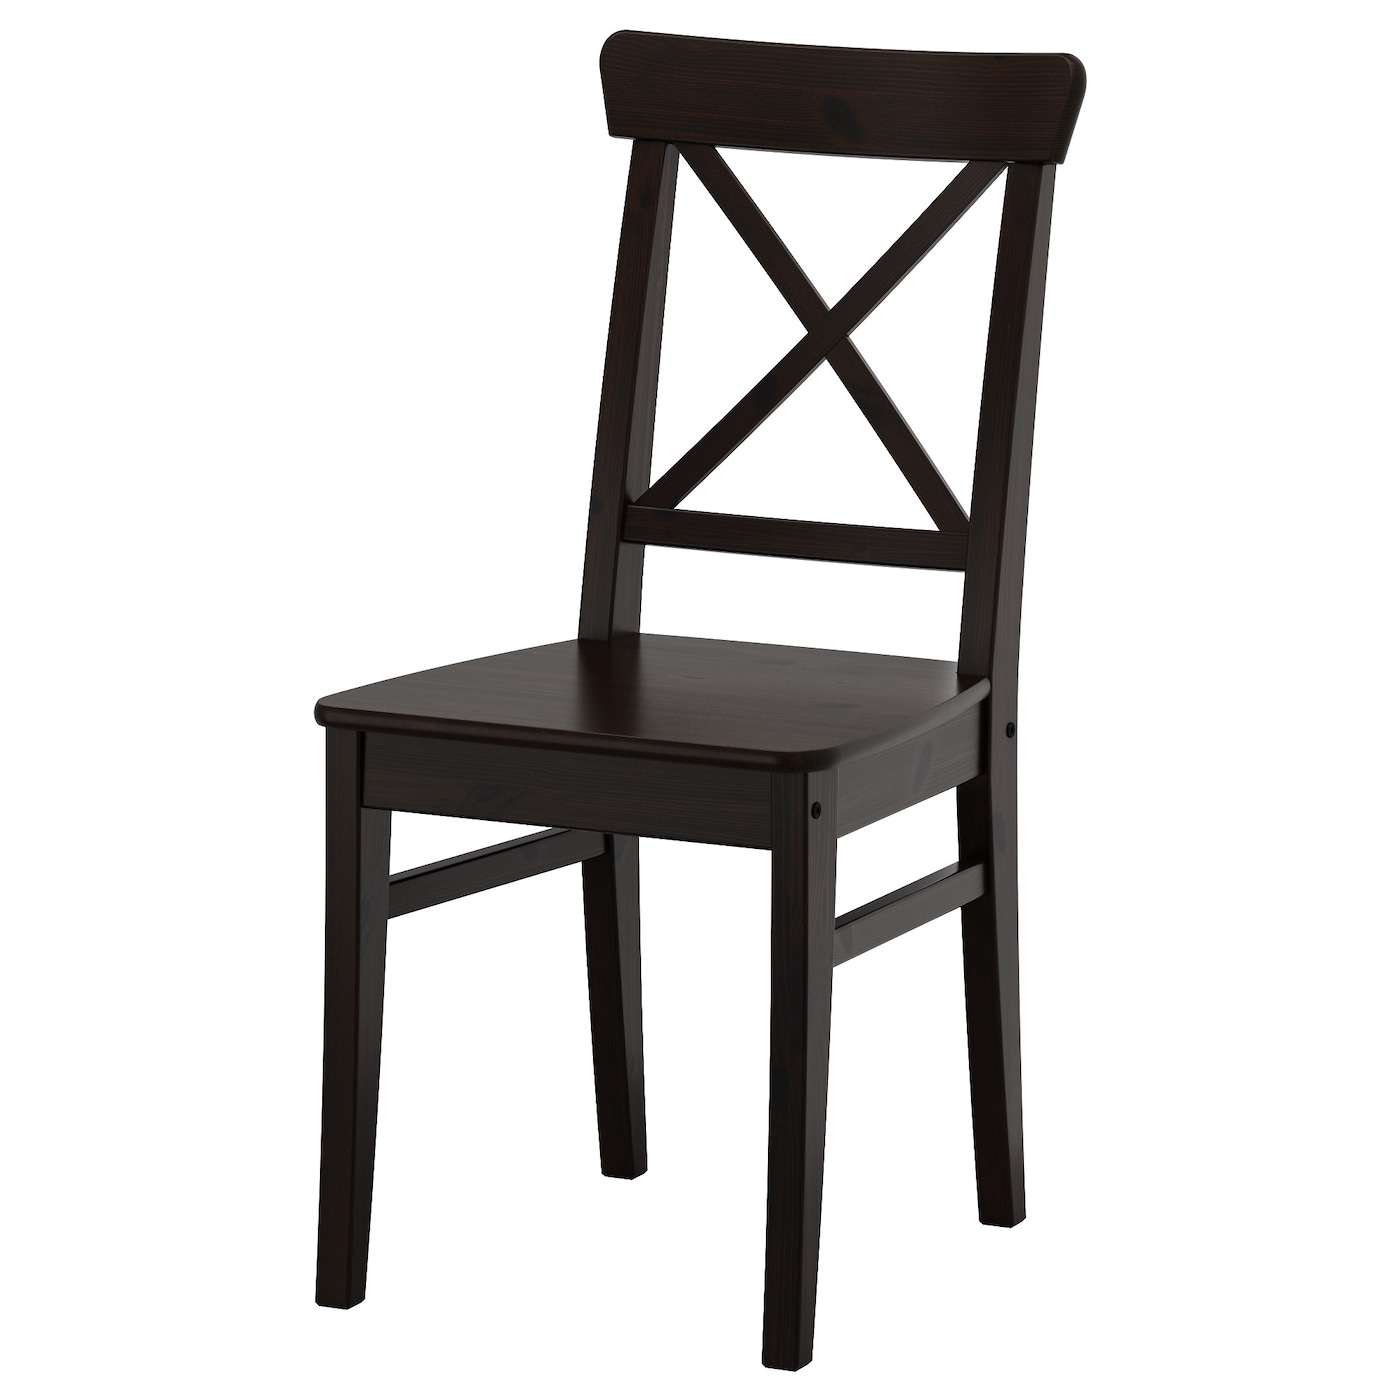 Ingolf chair brown black ikea for Chaise haute de bar ikea